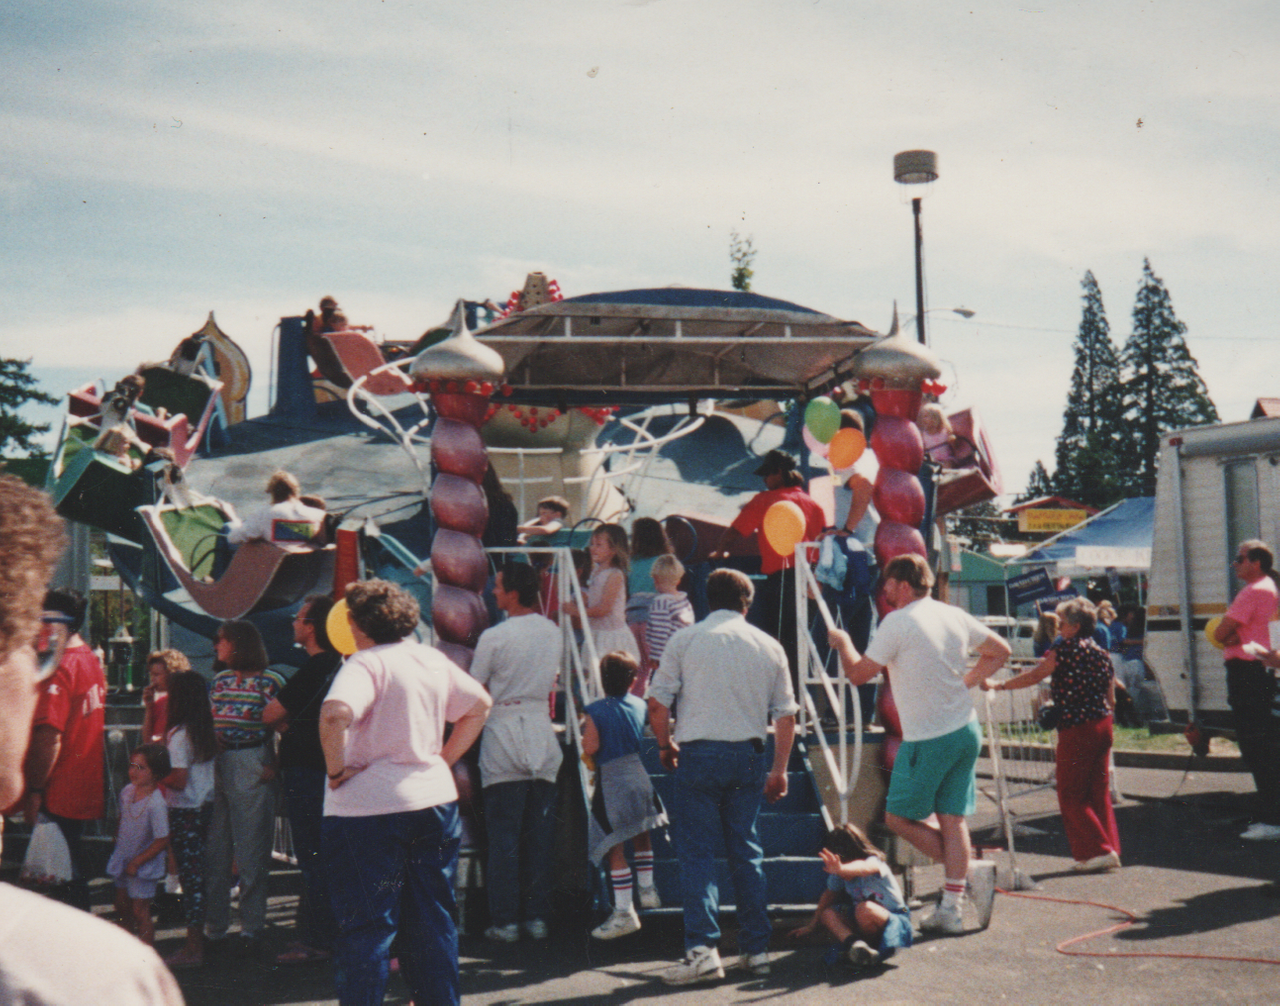 1992-09 - Fair in Forest Grove, parade, rides, Katie, Rick, Joey, Crystal, by Marilyn-09.png